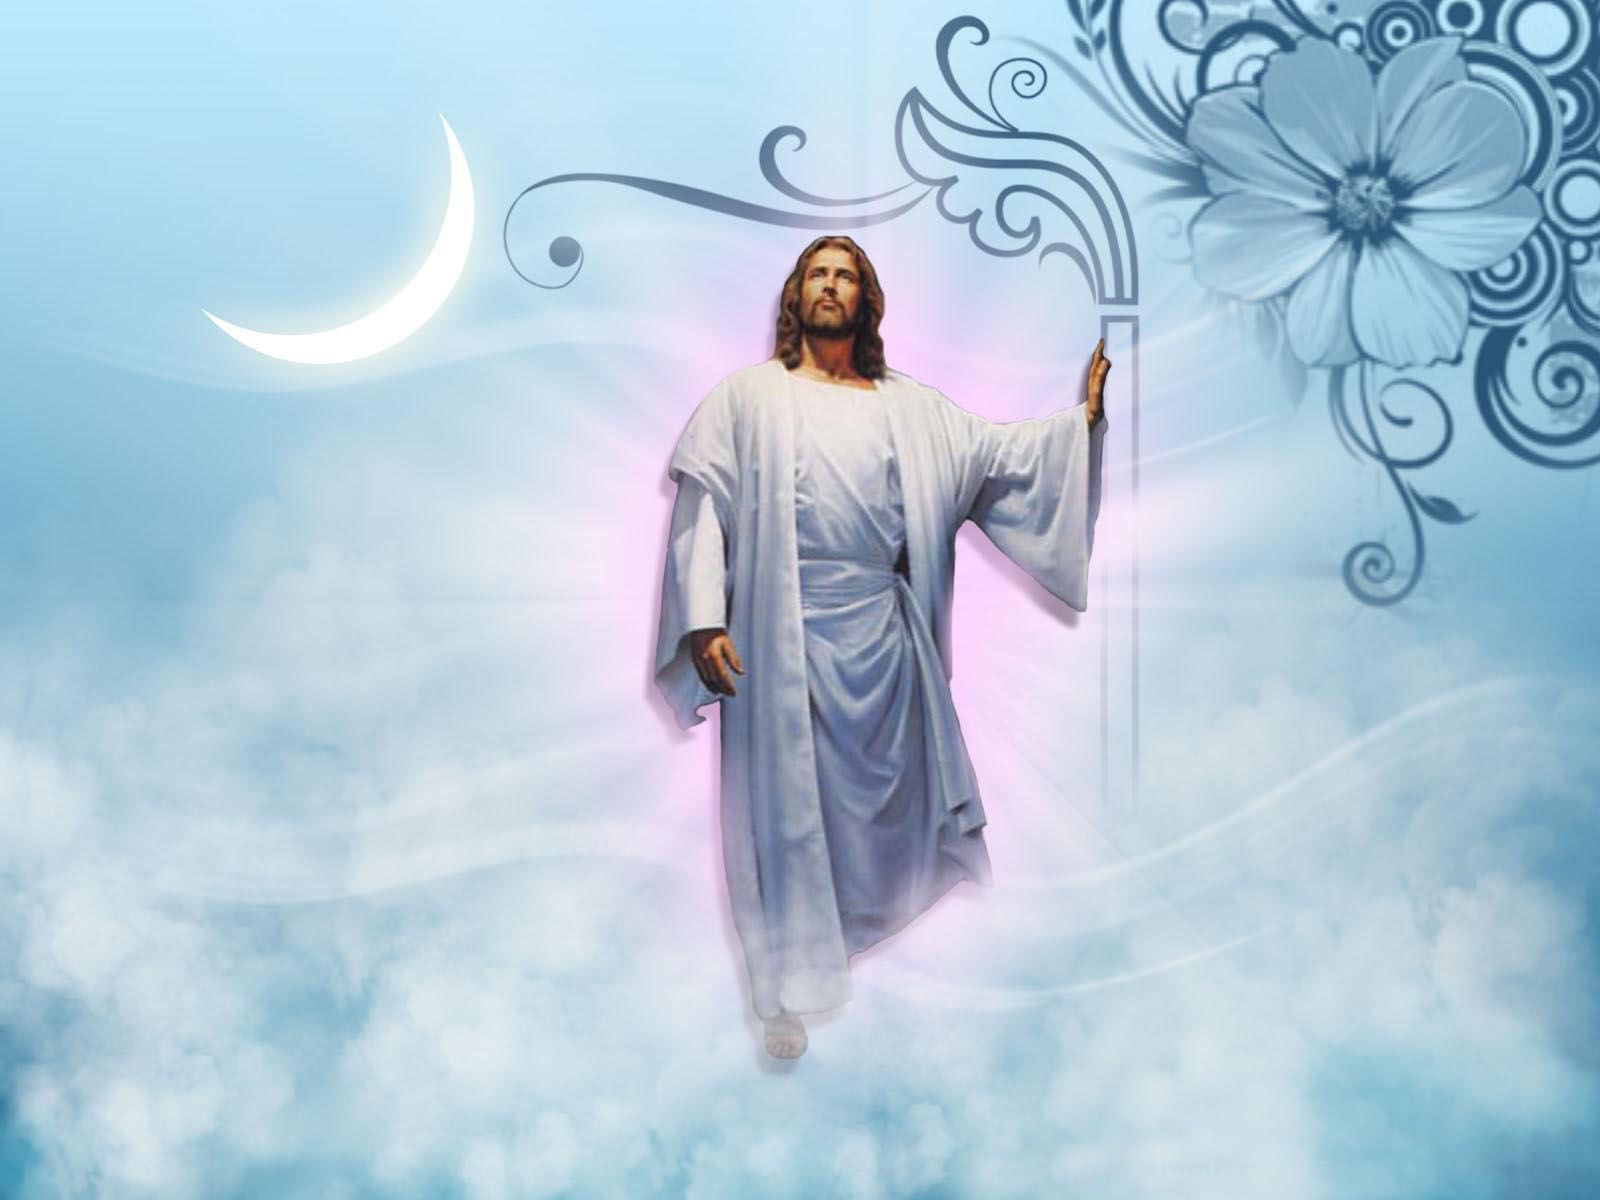 Imagenes Nuevas Para Facebook Jesus Resurrecion Jpg 1600 1200 Jesus Wallpaper Cover Pics For Facebook Cover Pics